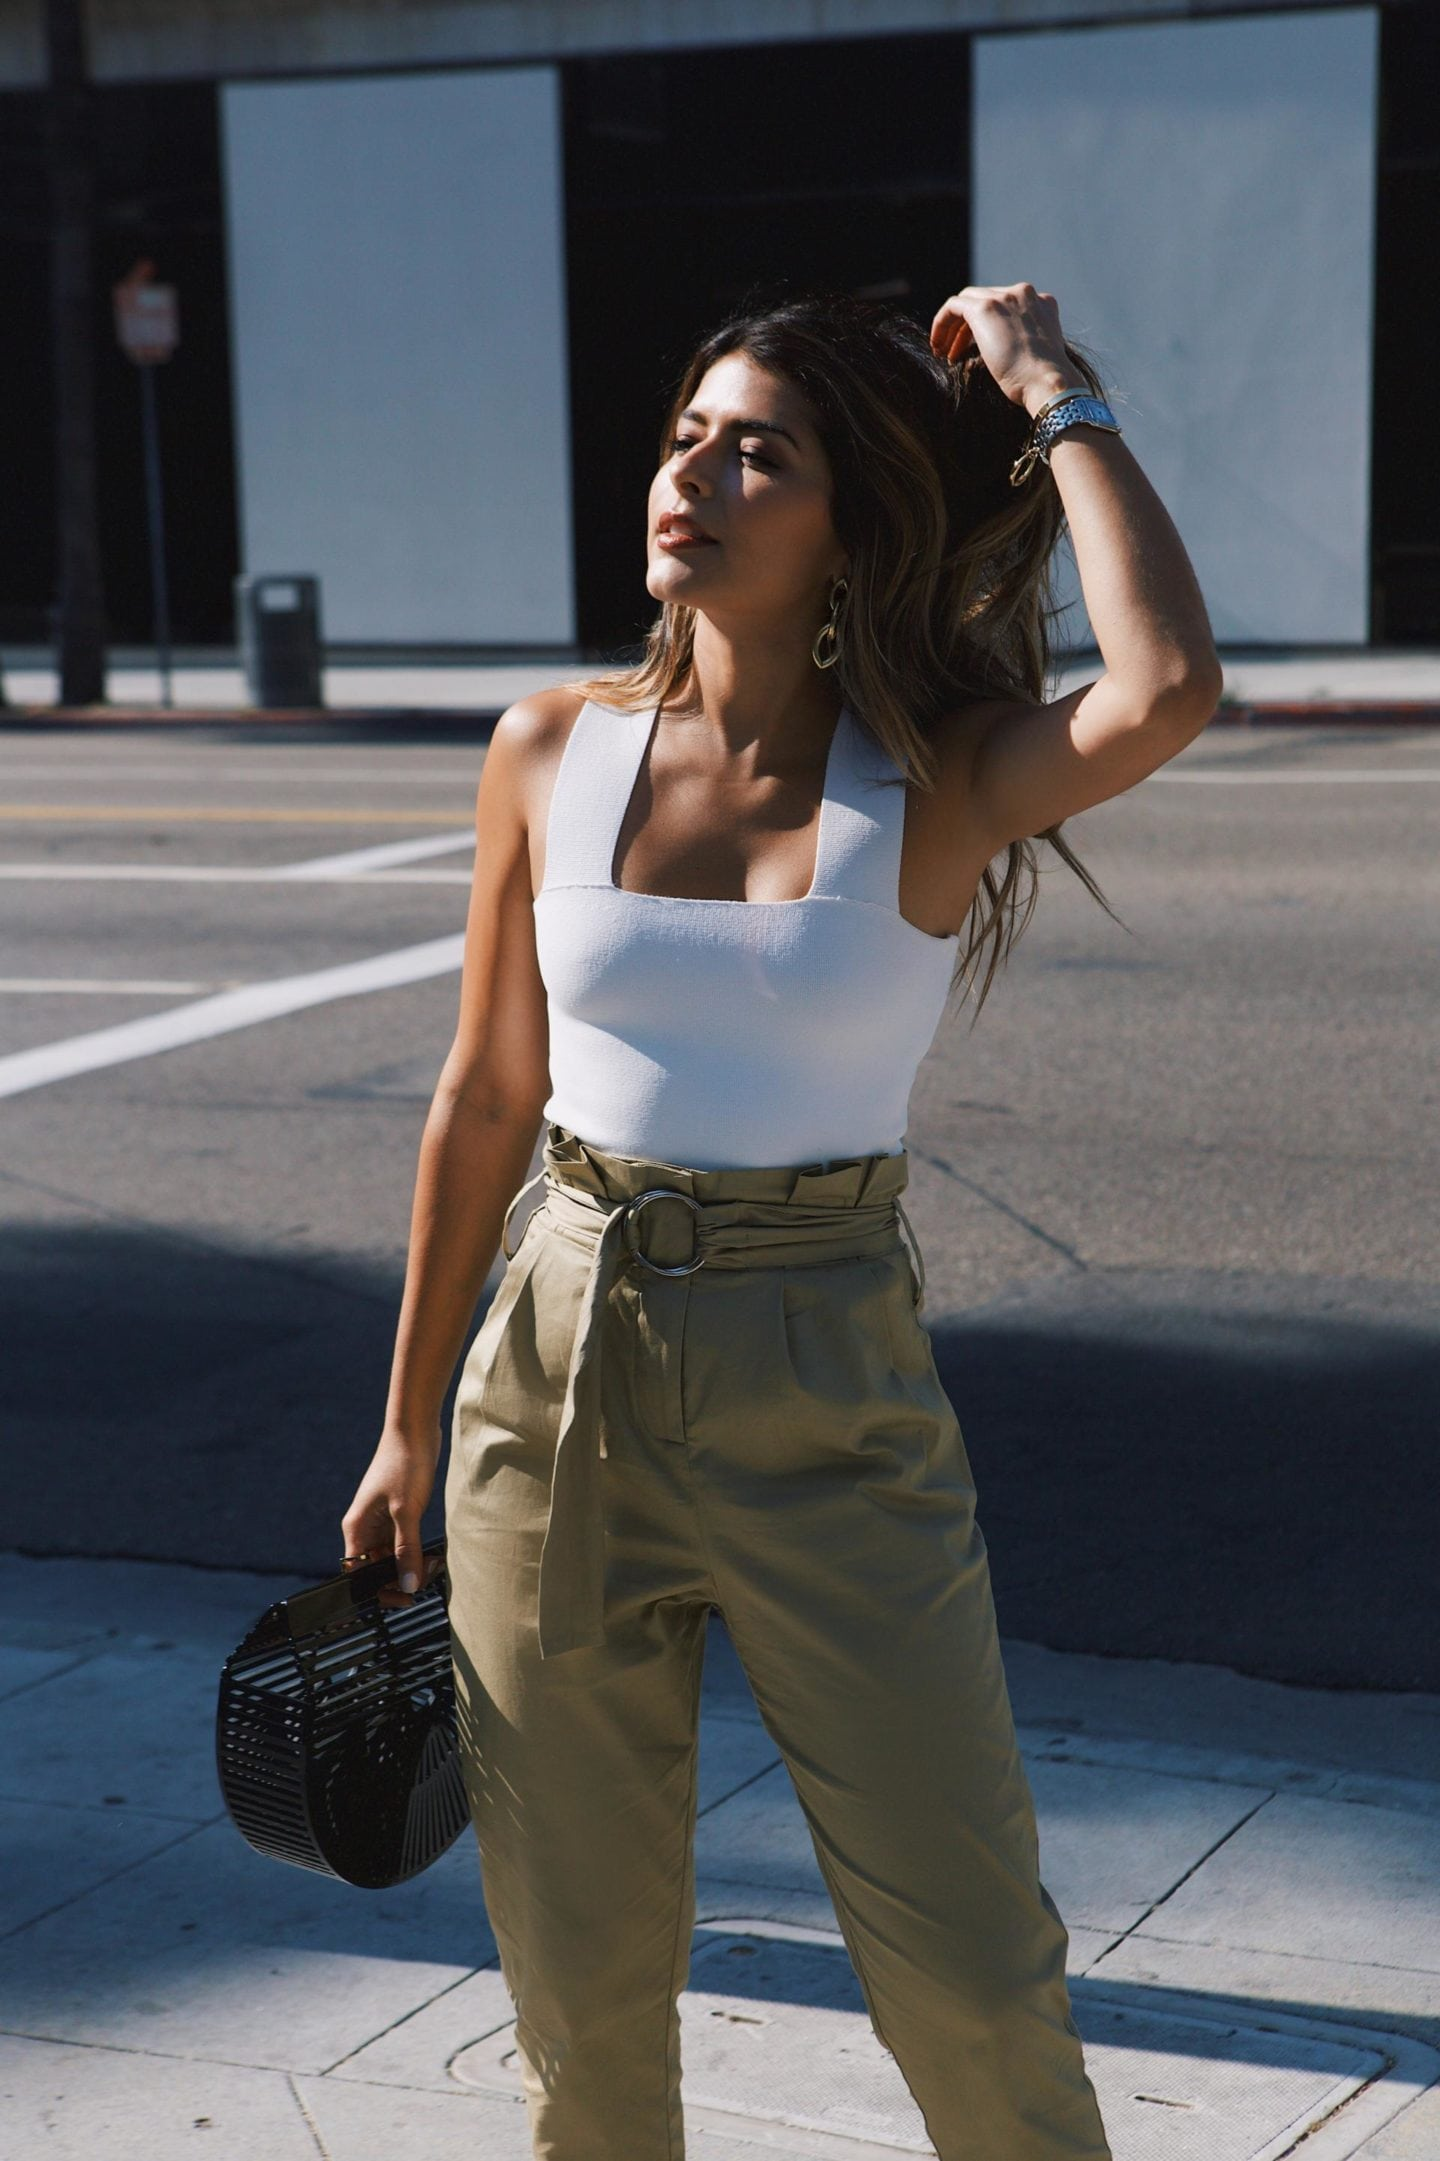 High Waisted Pants, ALC Crop Top, Cult gaia basket bag, gold earrings // The Girl From Panama